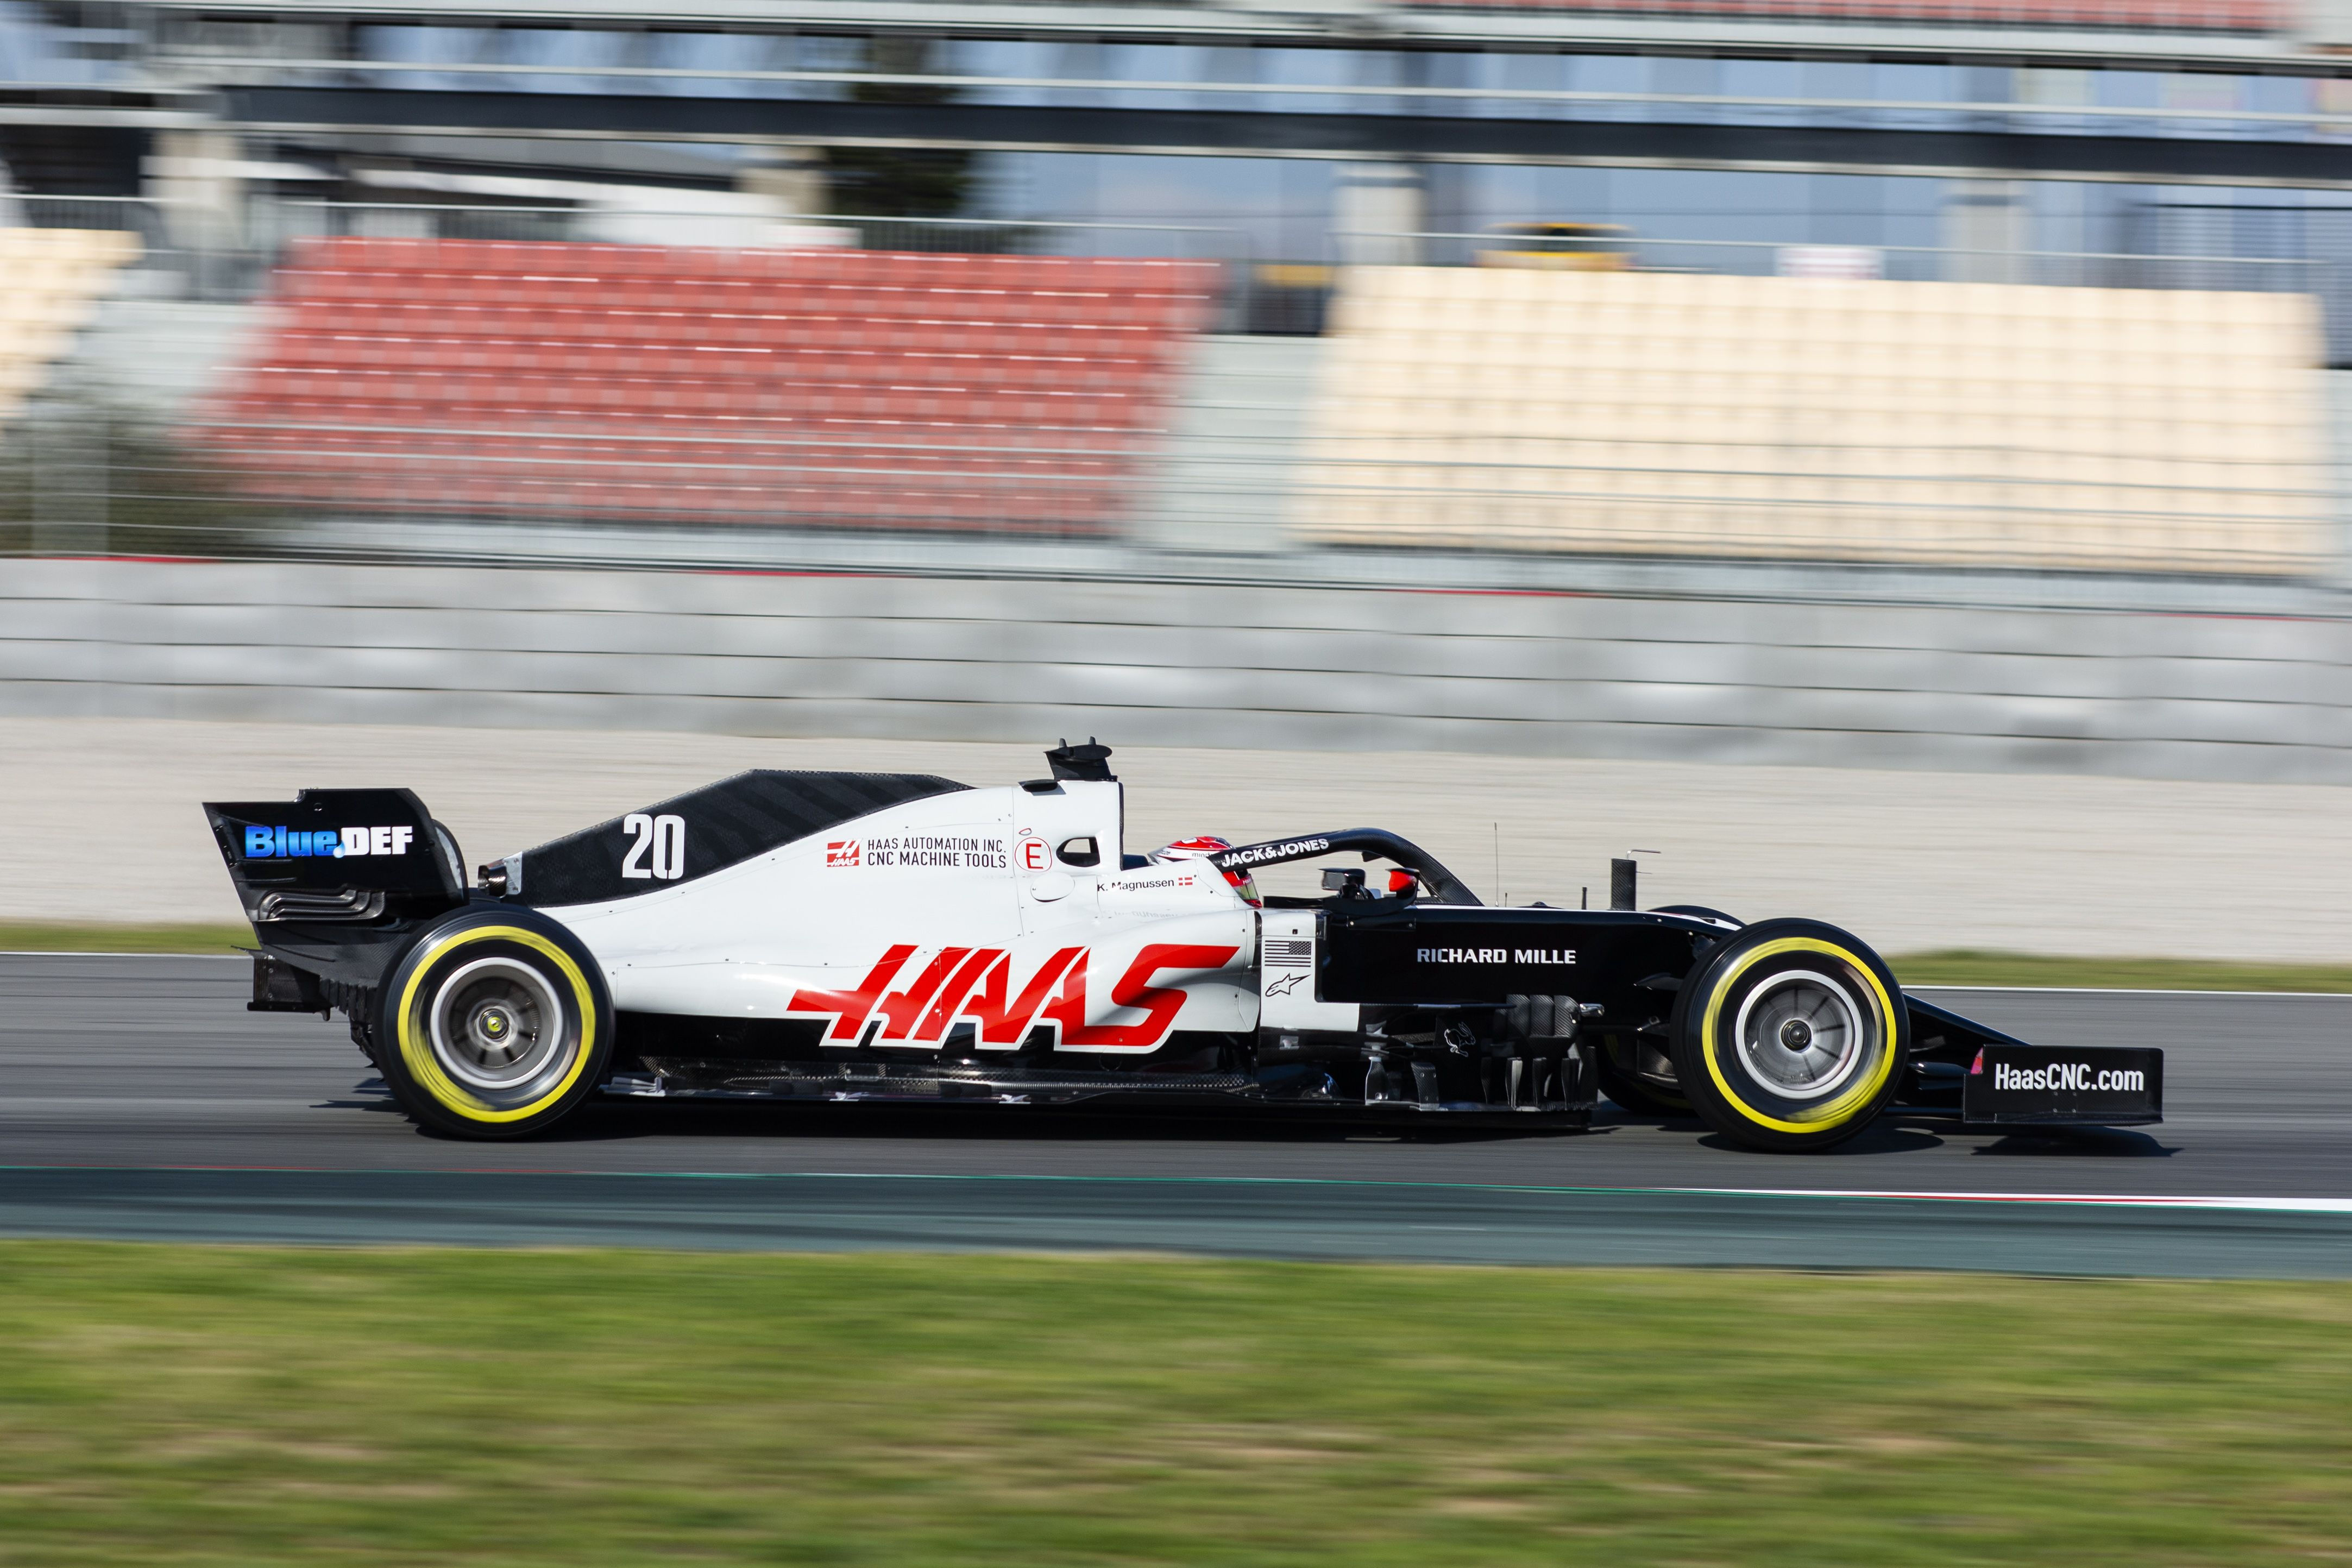 Haas F1 Team Penalized For Coaching Drivers In Hungary